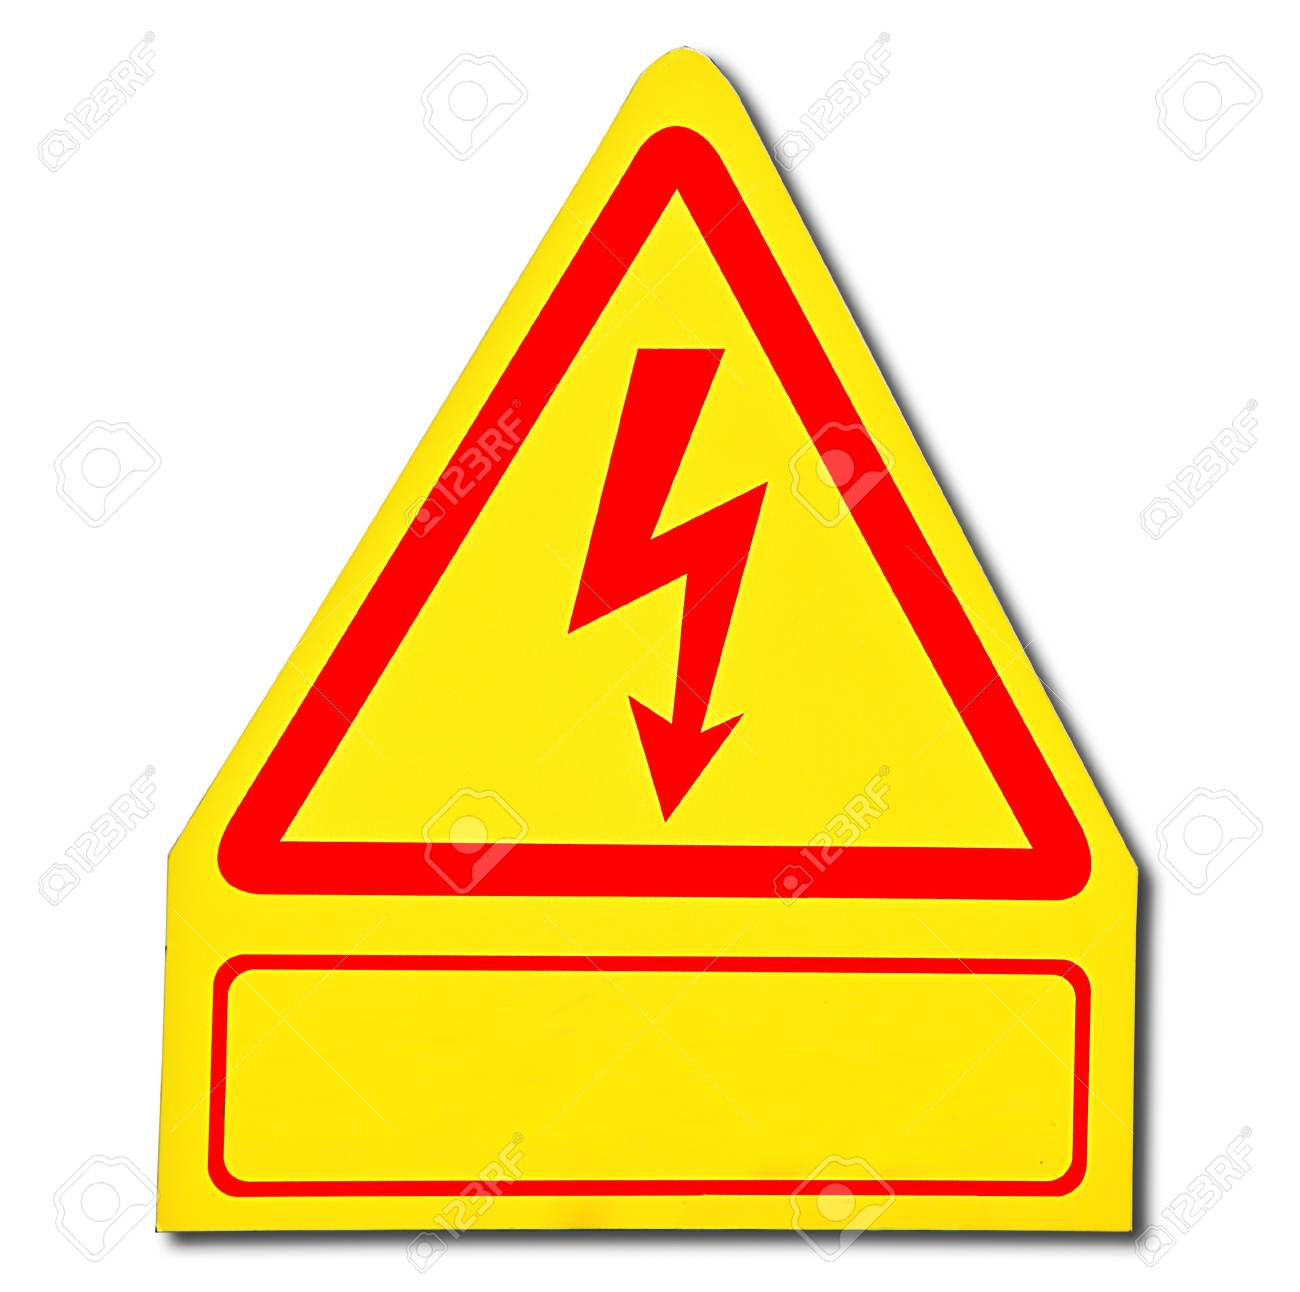 The Sign of danger of electricity from high voltage isolated on white background Stock Photo - 13598040